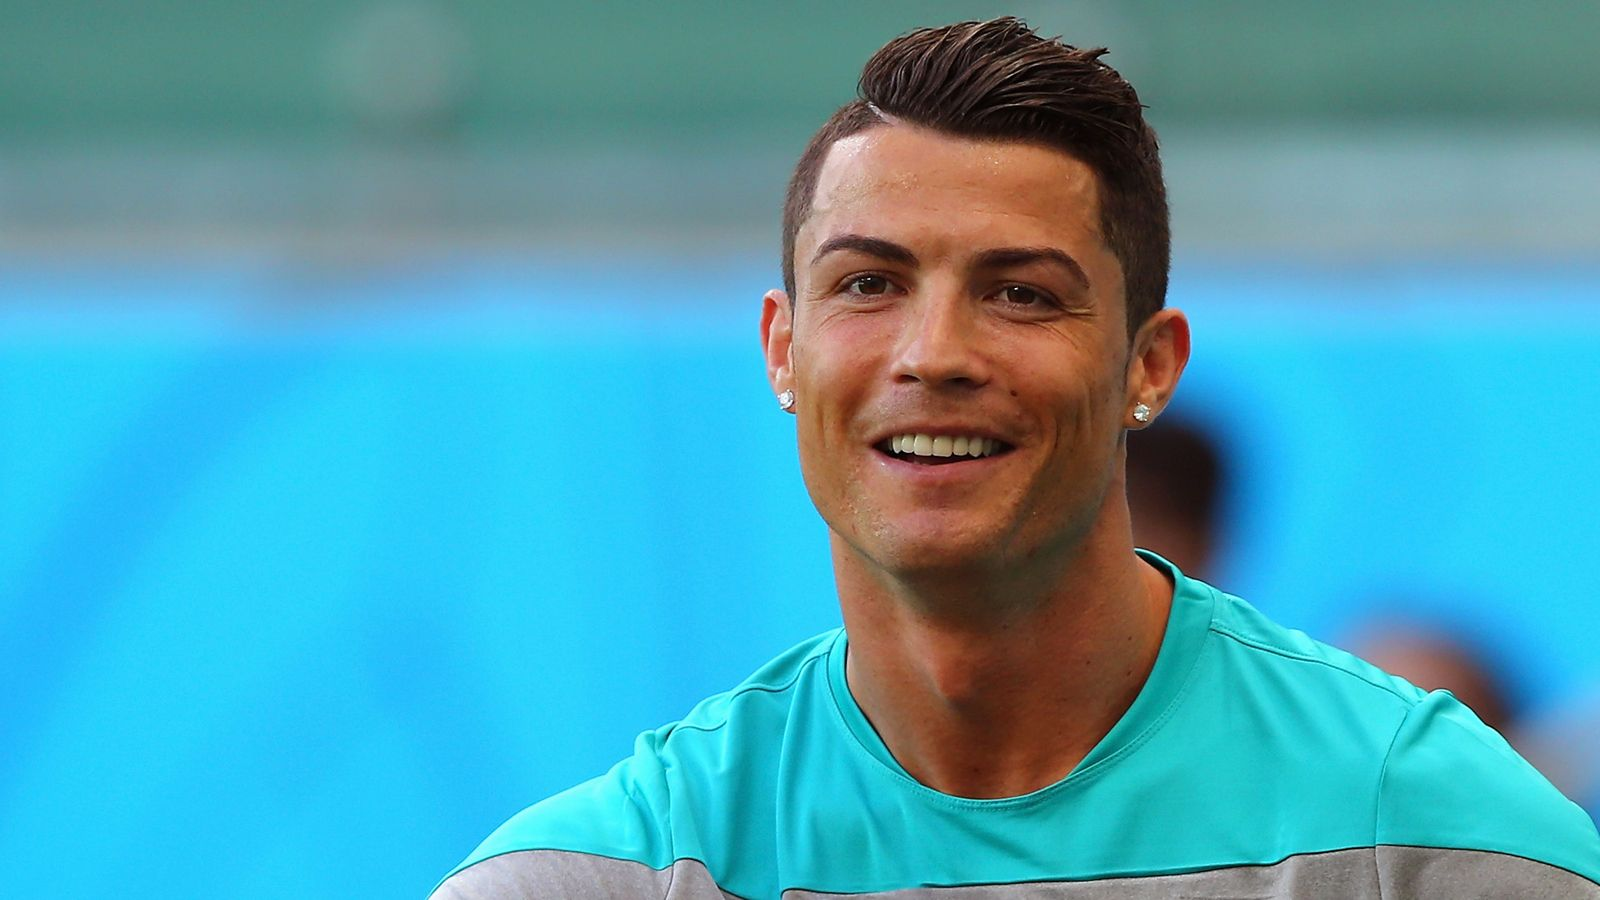 Check Out Cristiano Ronaldo Haircut Is One Of The Most Well Known